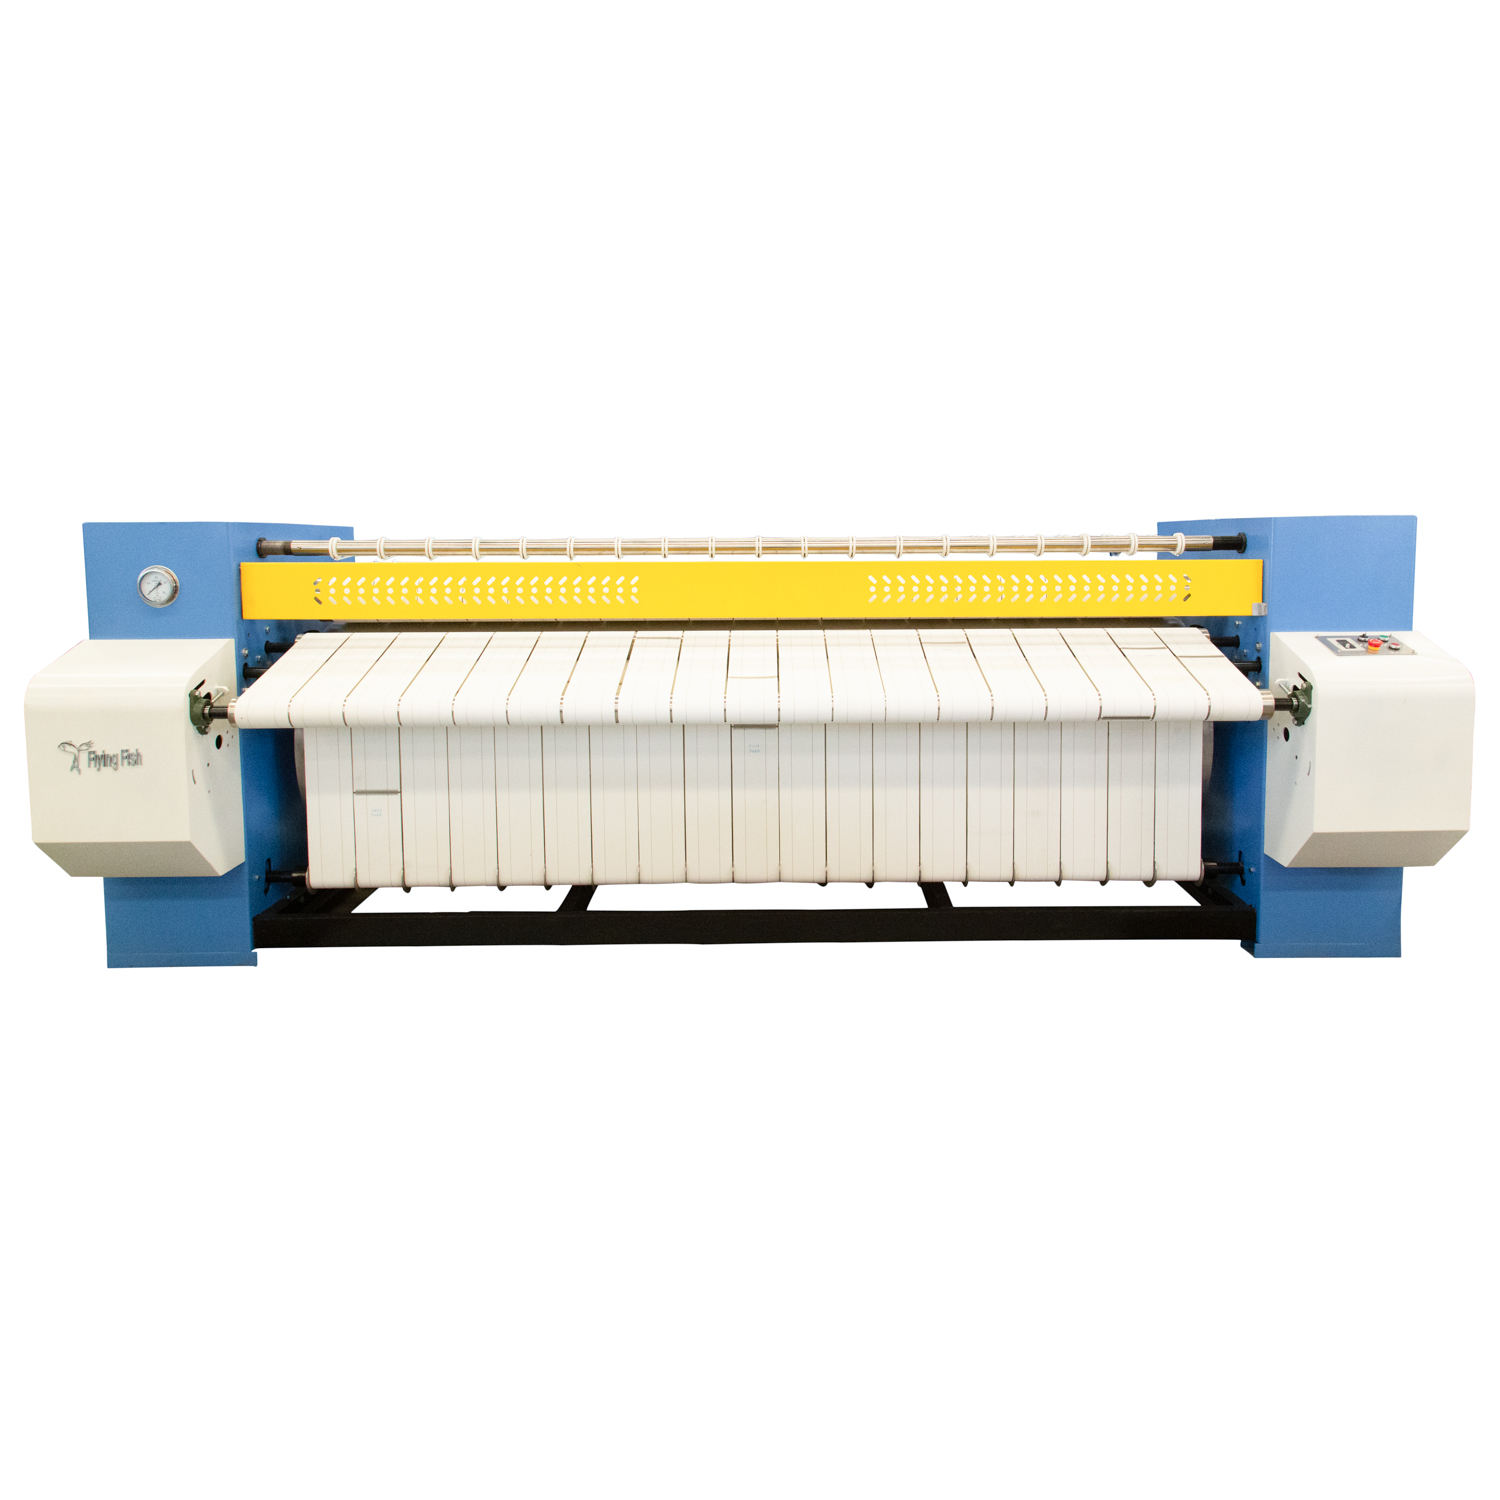 Laundry flatwork ironer, sheets/quilts/tablecloth ironing machine